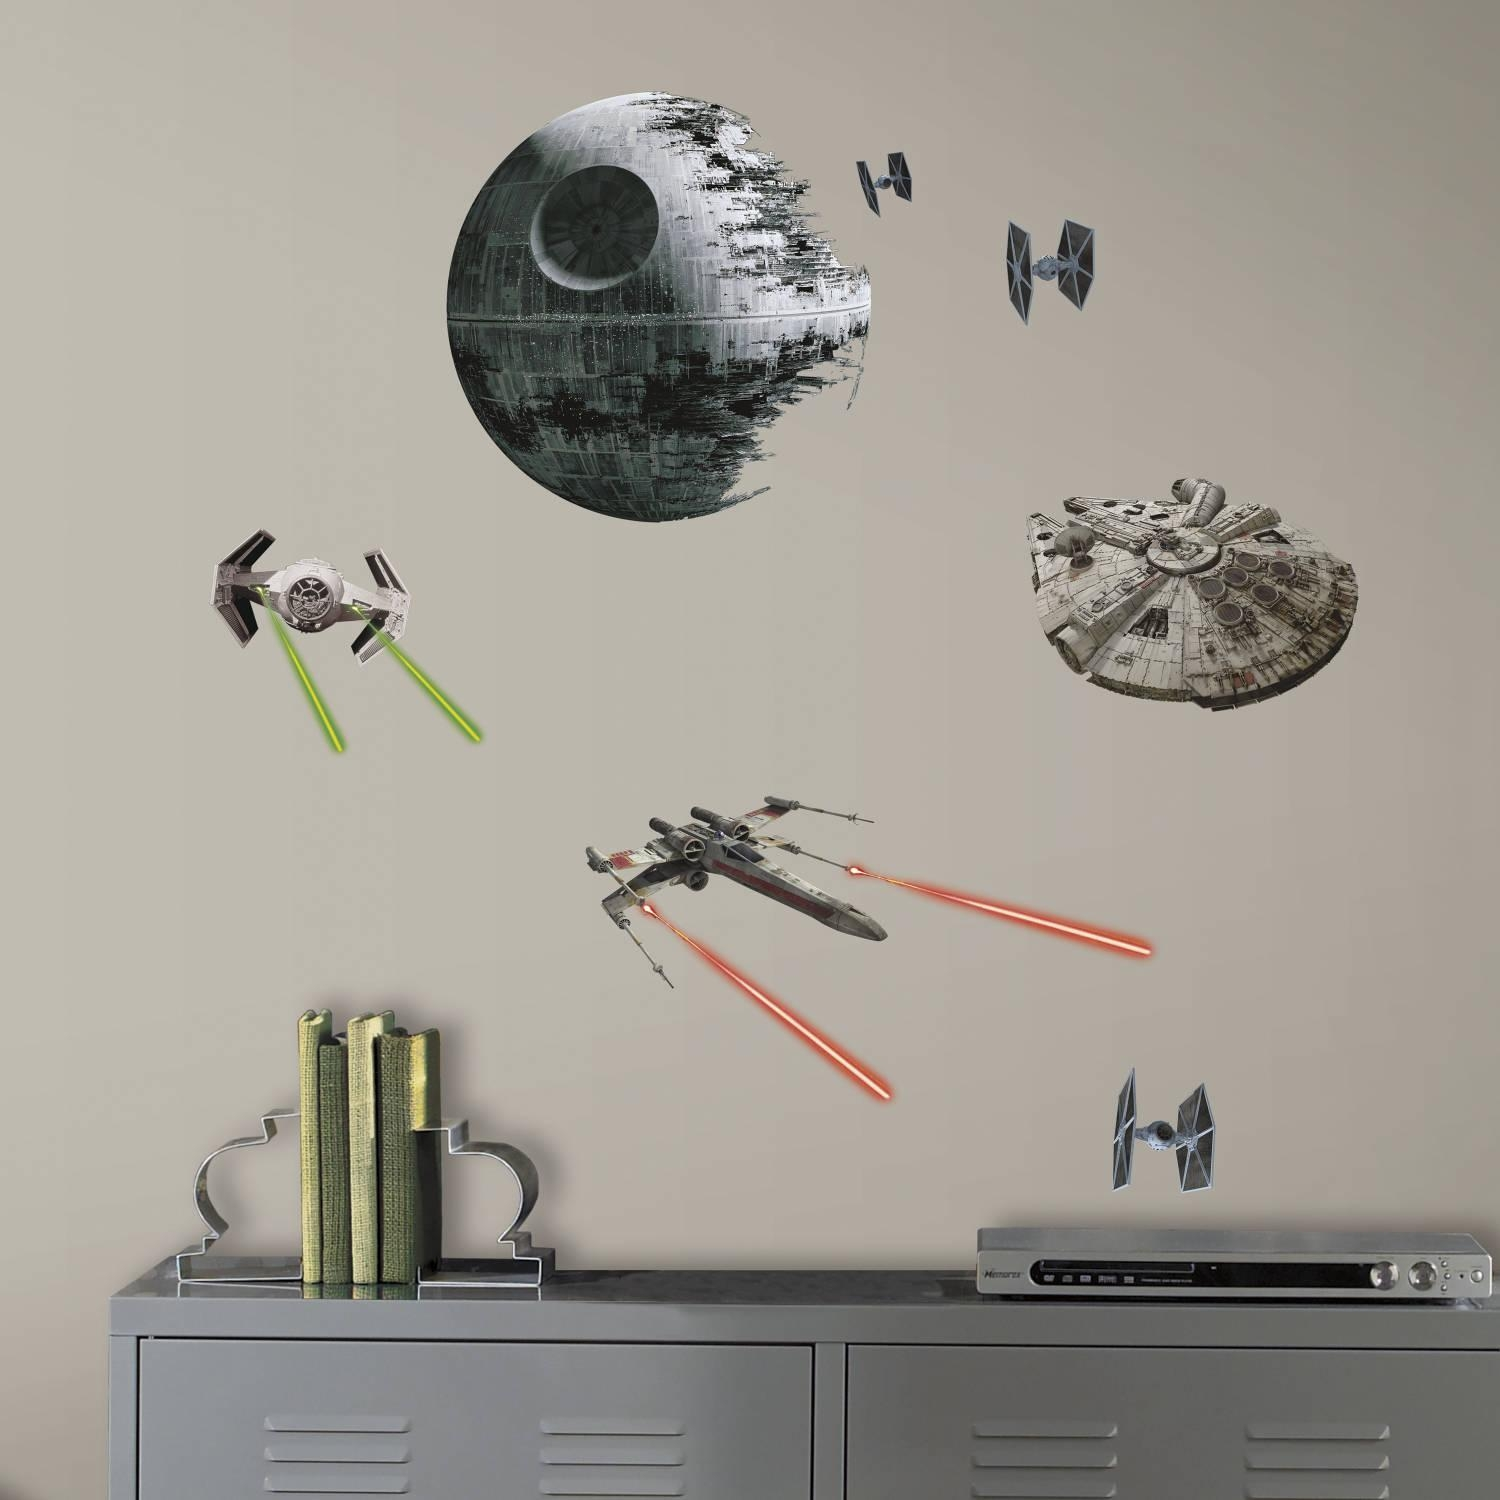 Roommates Star Wars Episode Vi Spaceships Peel And Stick Wall with regard to Walmart Wall Stickers